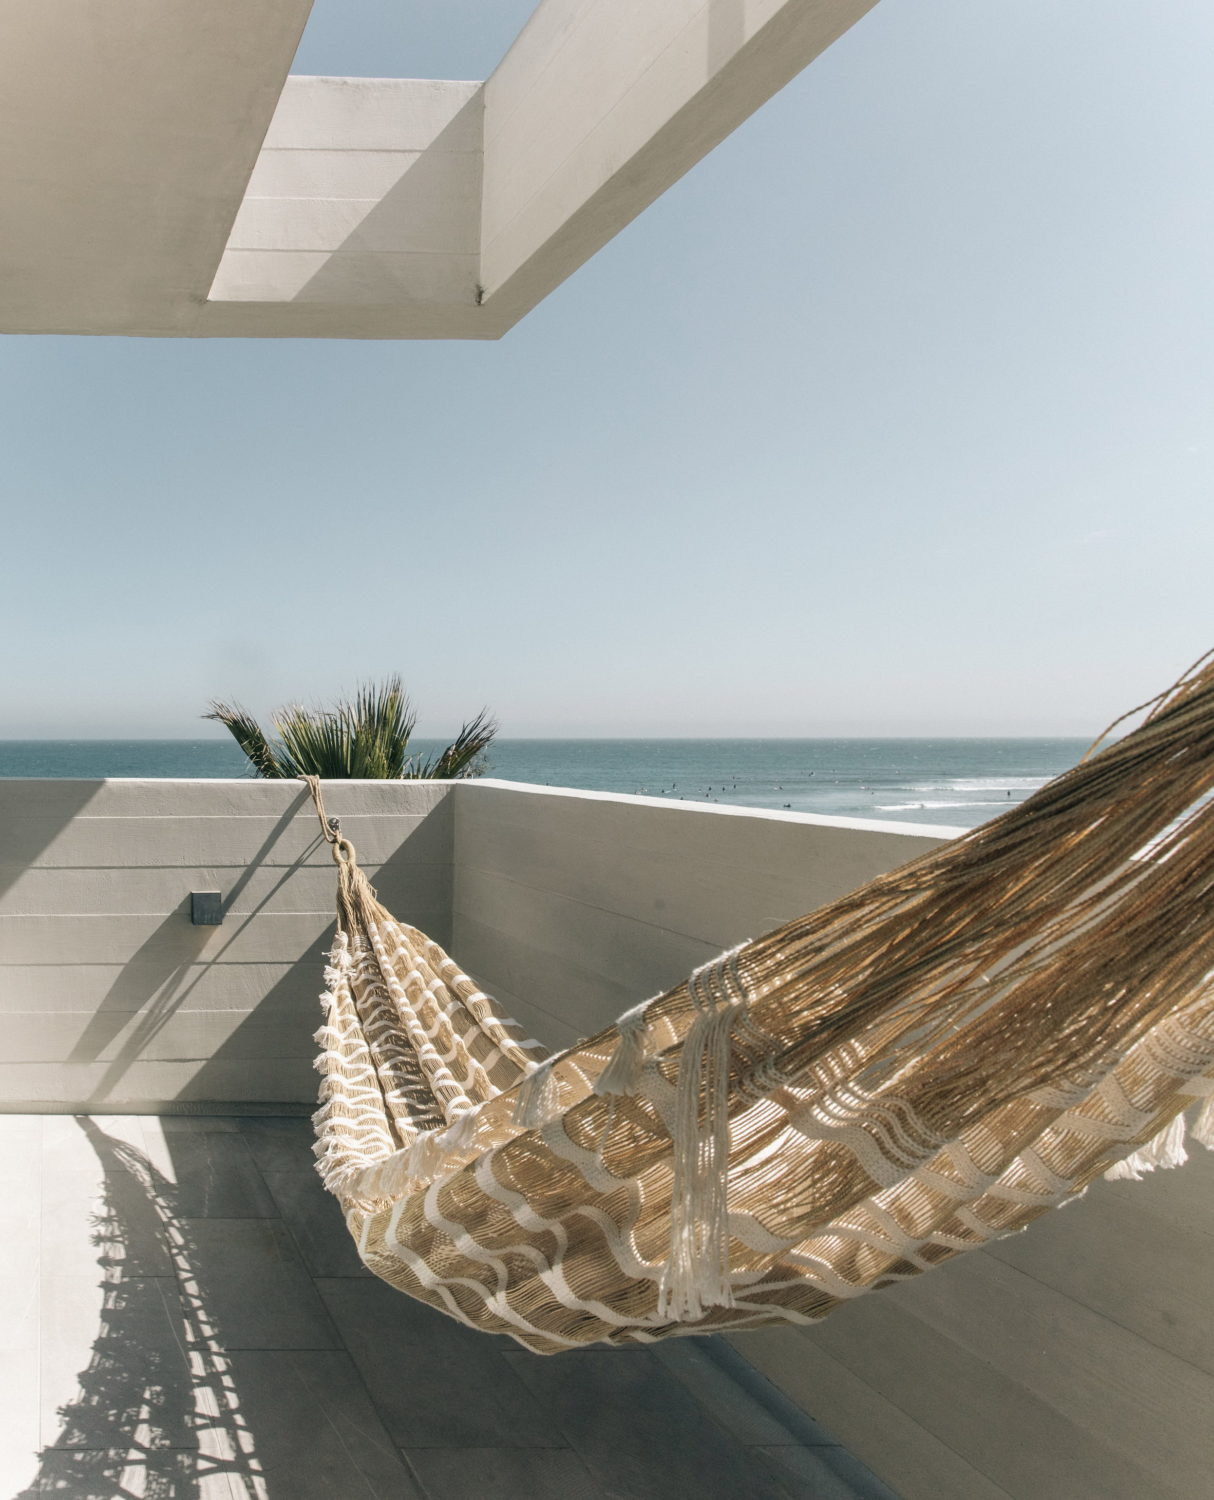 The Surfrider Hotel Malibu by Matthew Goodwin